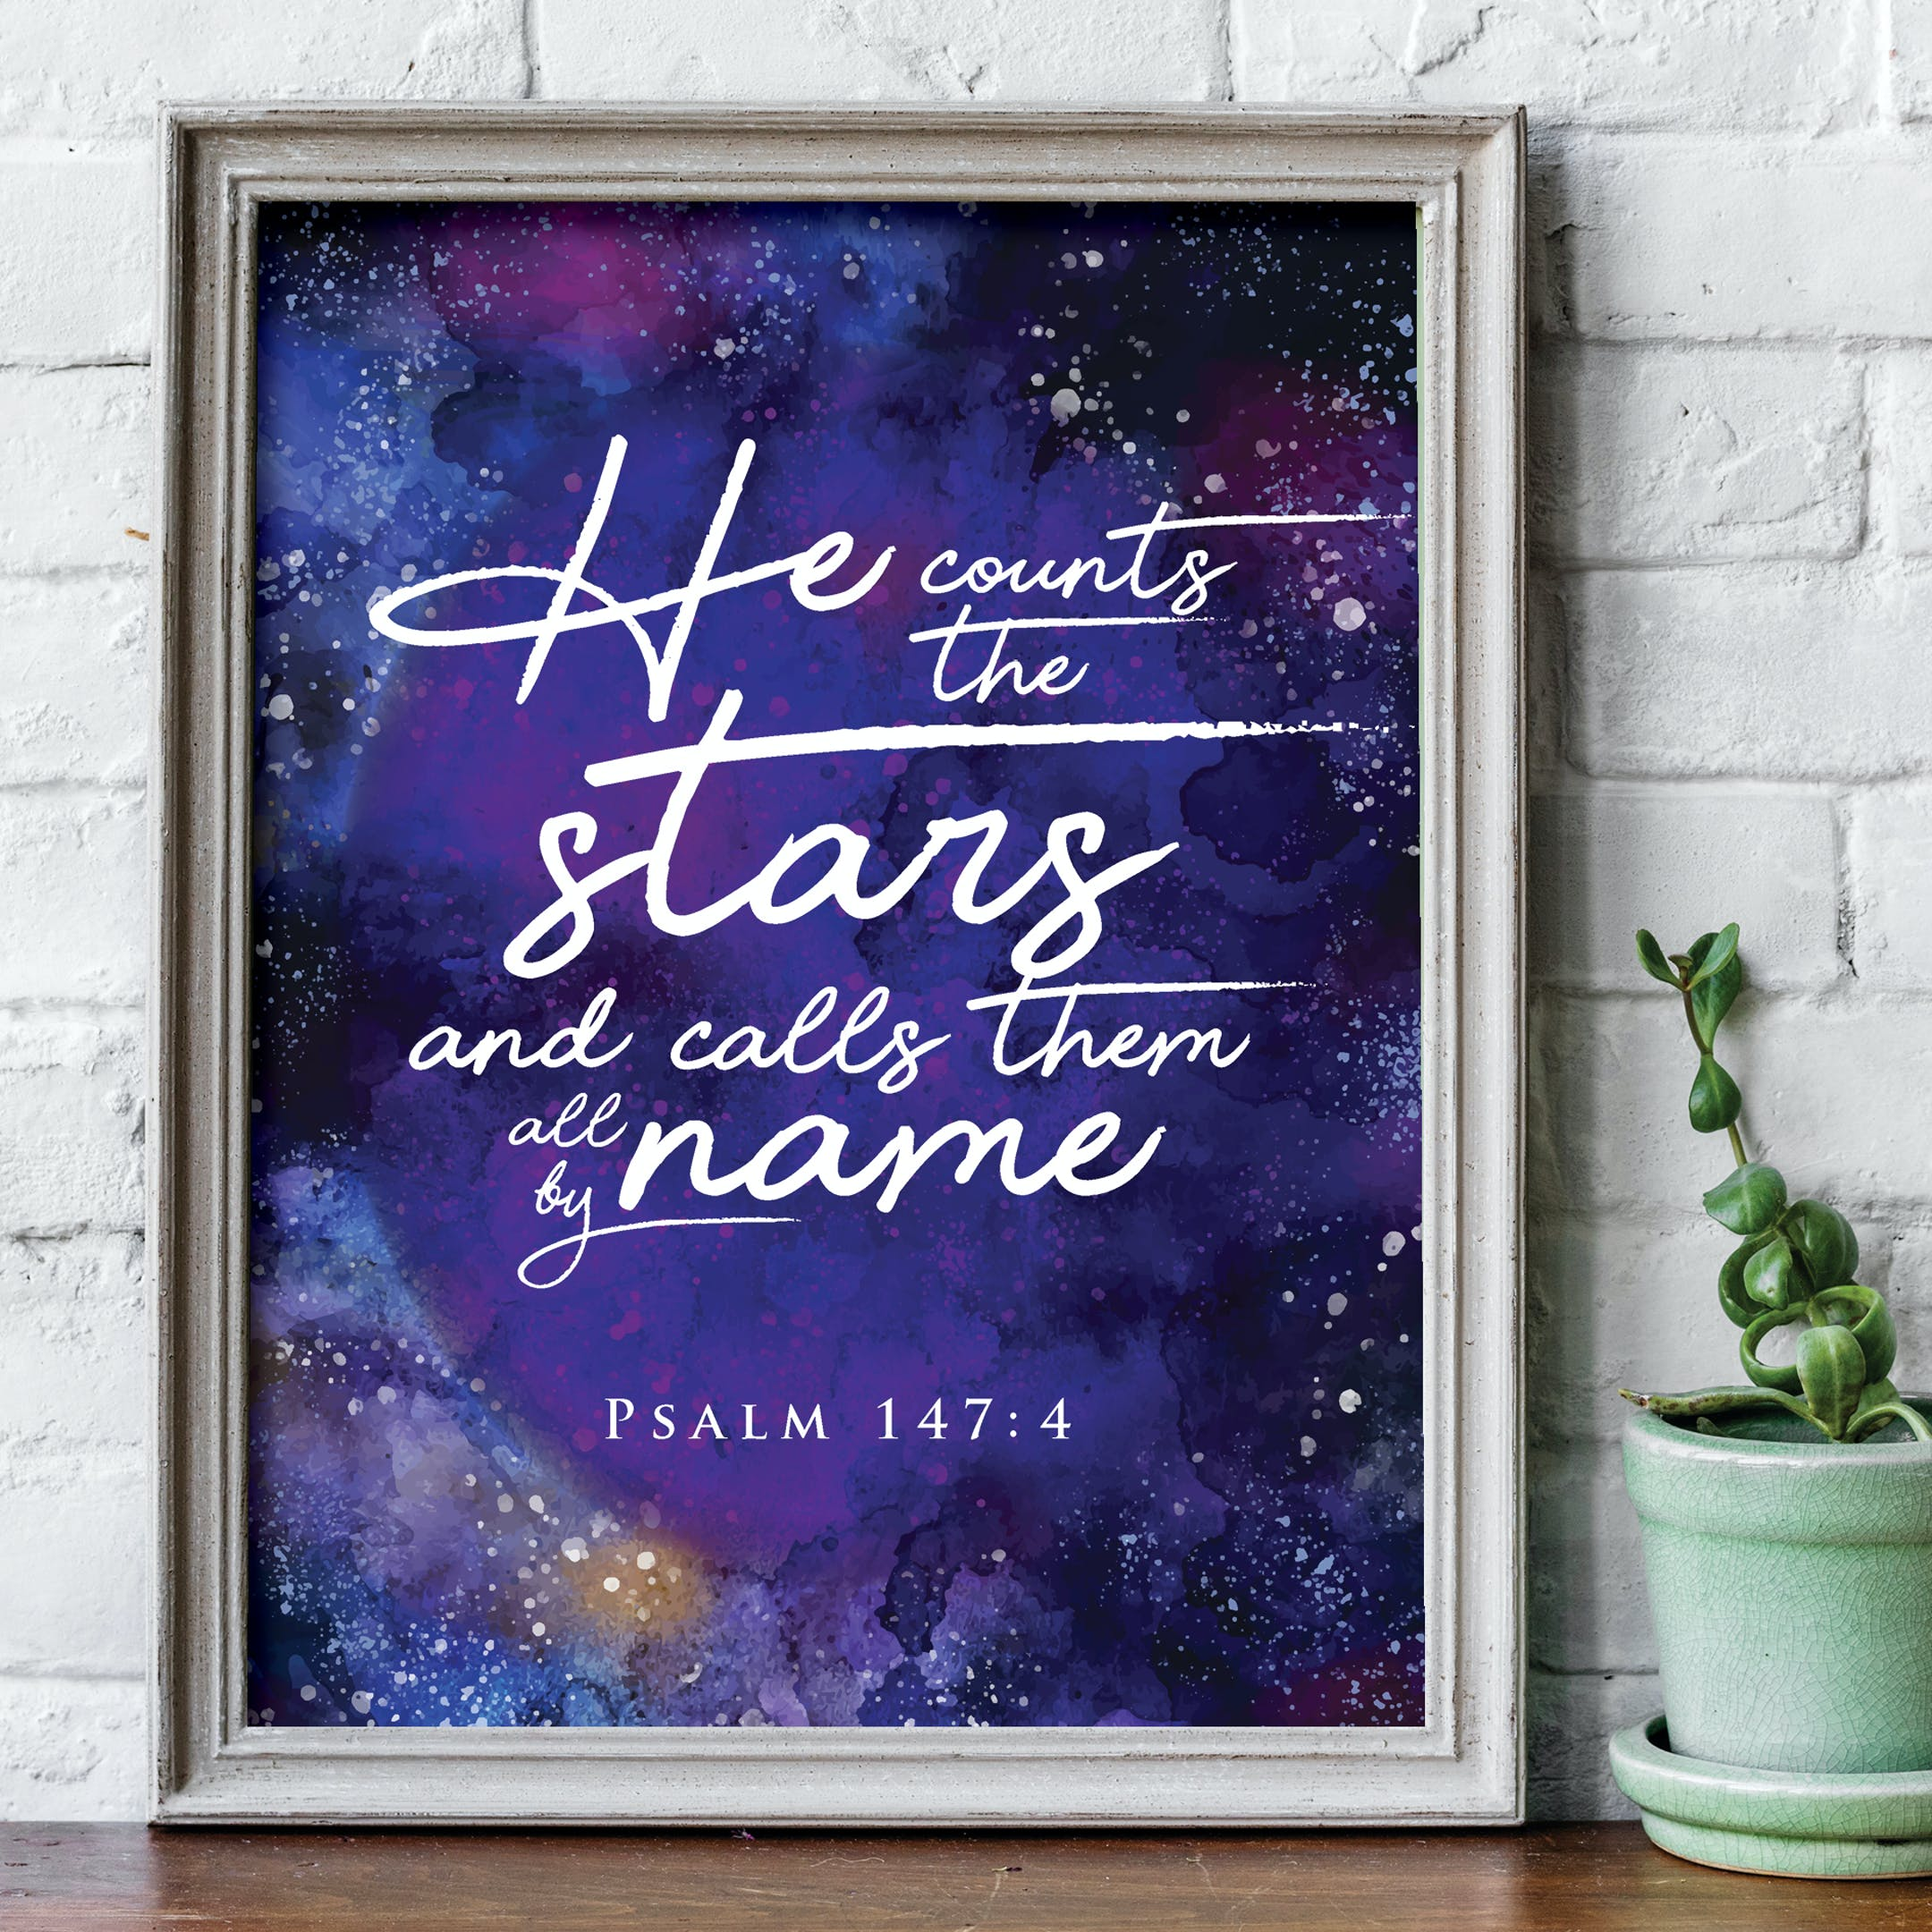 'He counts the stars and calls them all by name' Print - Psalm 147:4 - Nova Grace